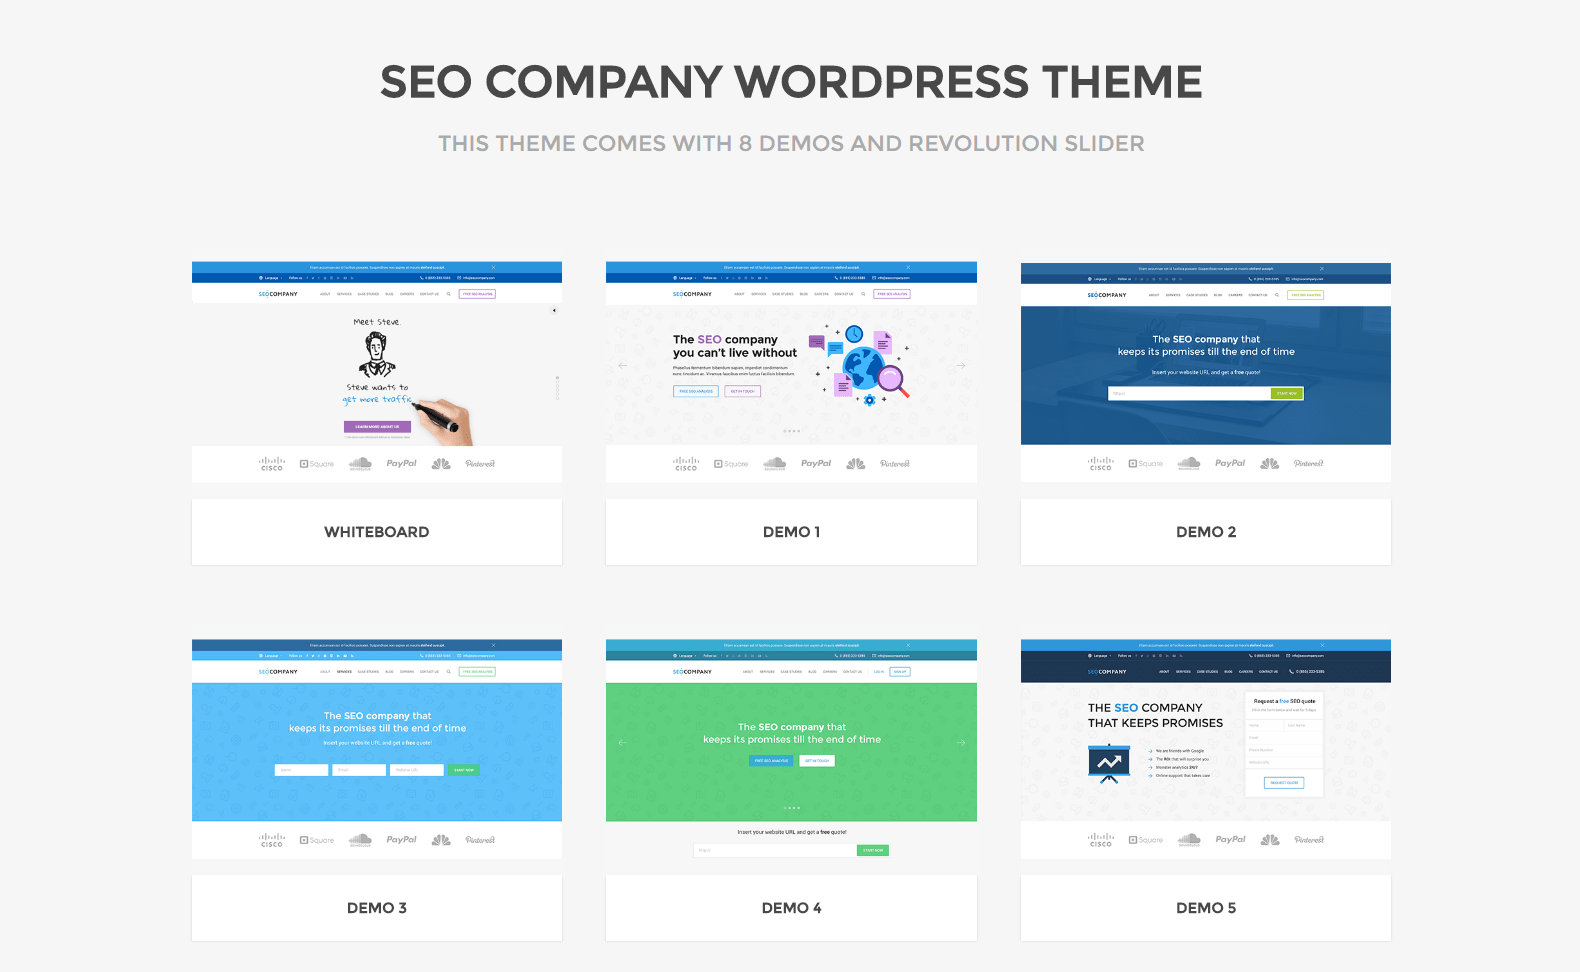 seo-marketing theme wordpress - finance wordpress theme - marketing wordpress theme - wordpress theme